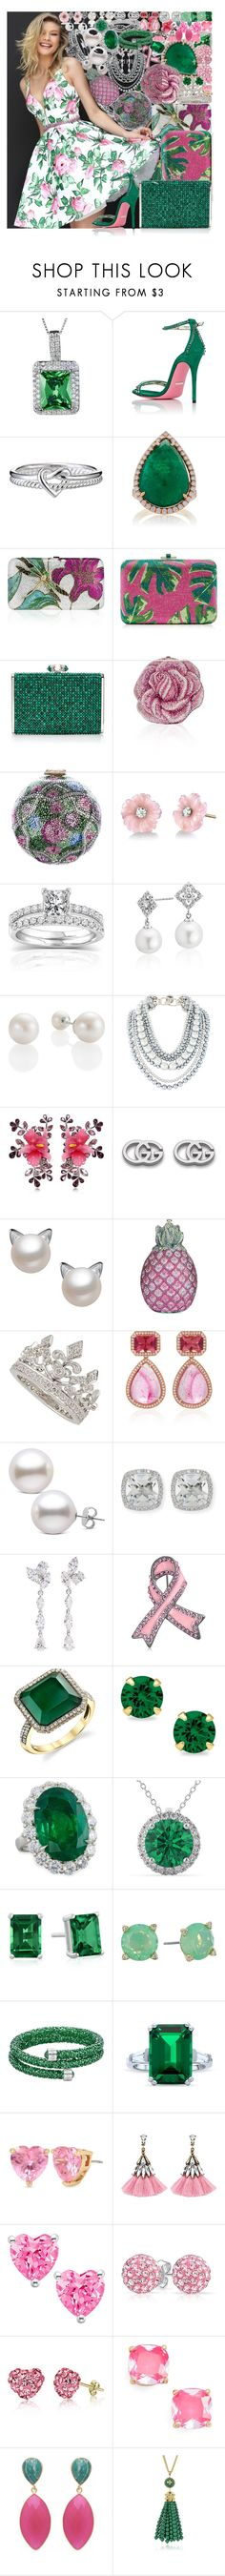 """""""Untitled #4695"""" by brooke-evans12 ❤ liked on Polyvore featuring West Coast Jewelry, Sherri Hill, Gucci, Avon, NSR Nina Runsdorf, Judith Leiber, Irene Neuwirth, Annello, Blue Nile and Dsquared2"""